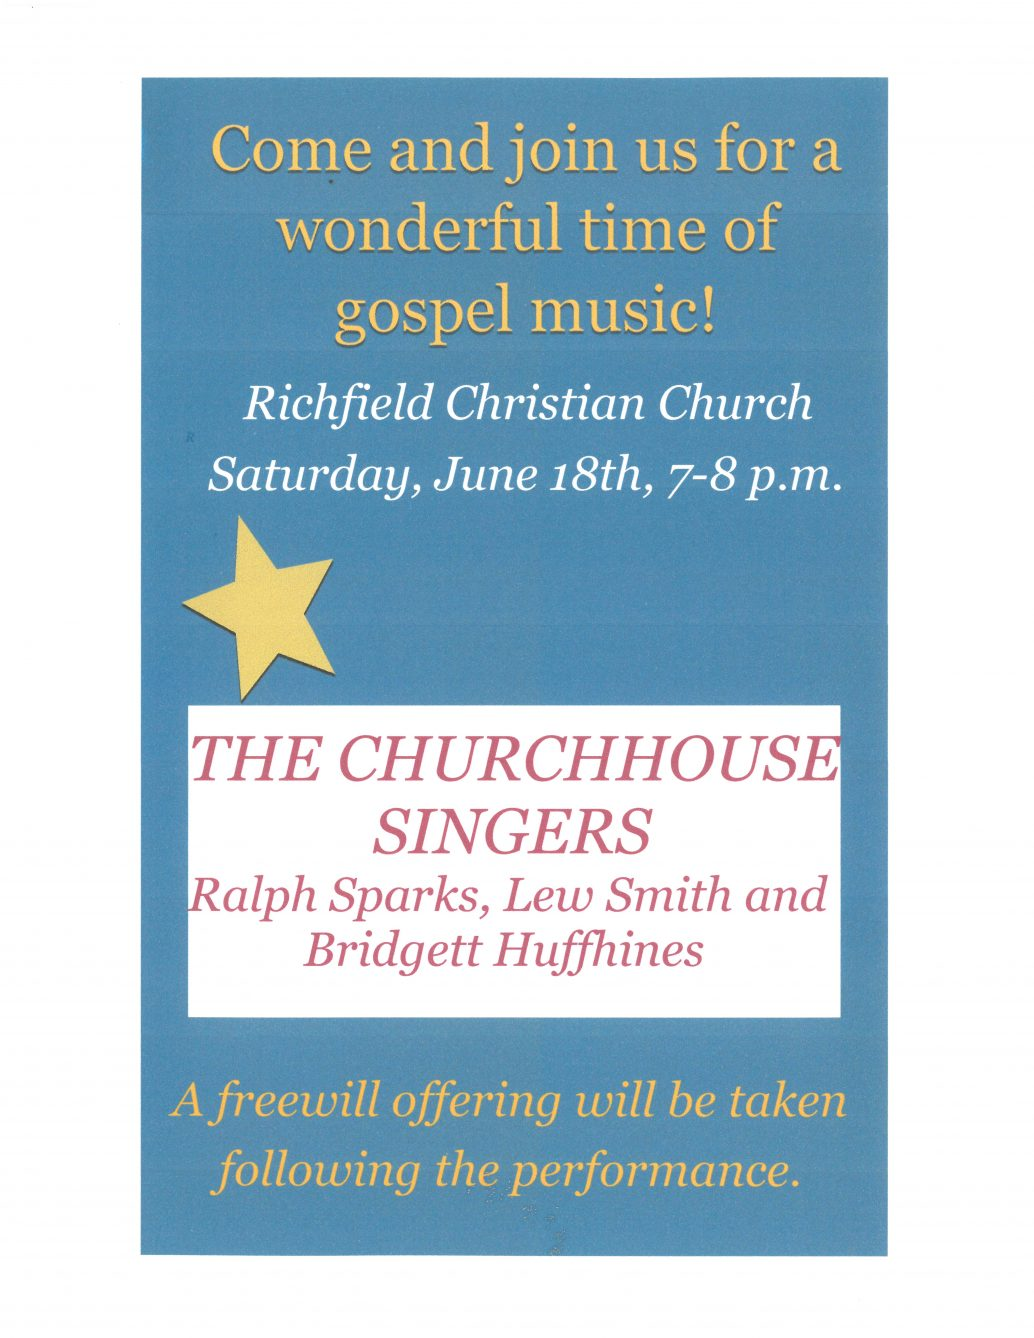 ChurchHouse Singers at Richfield